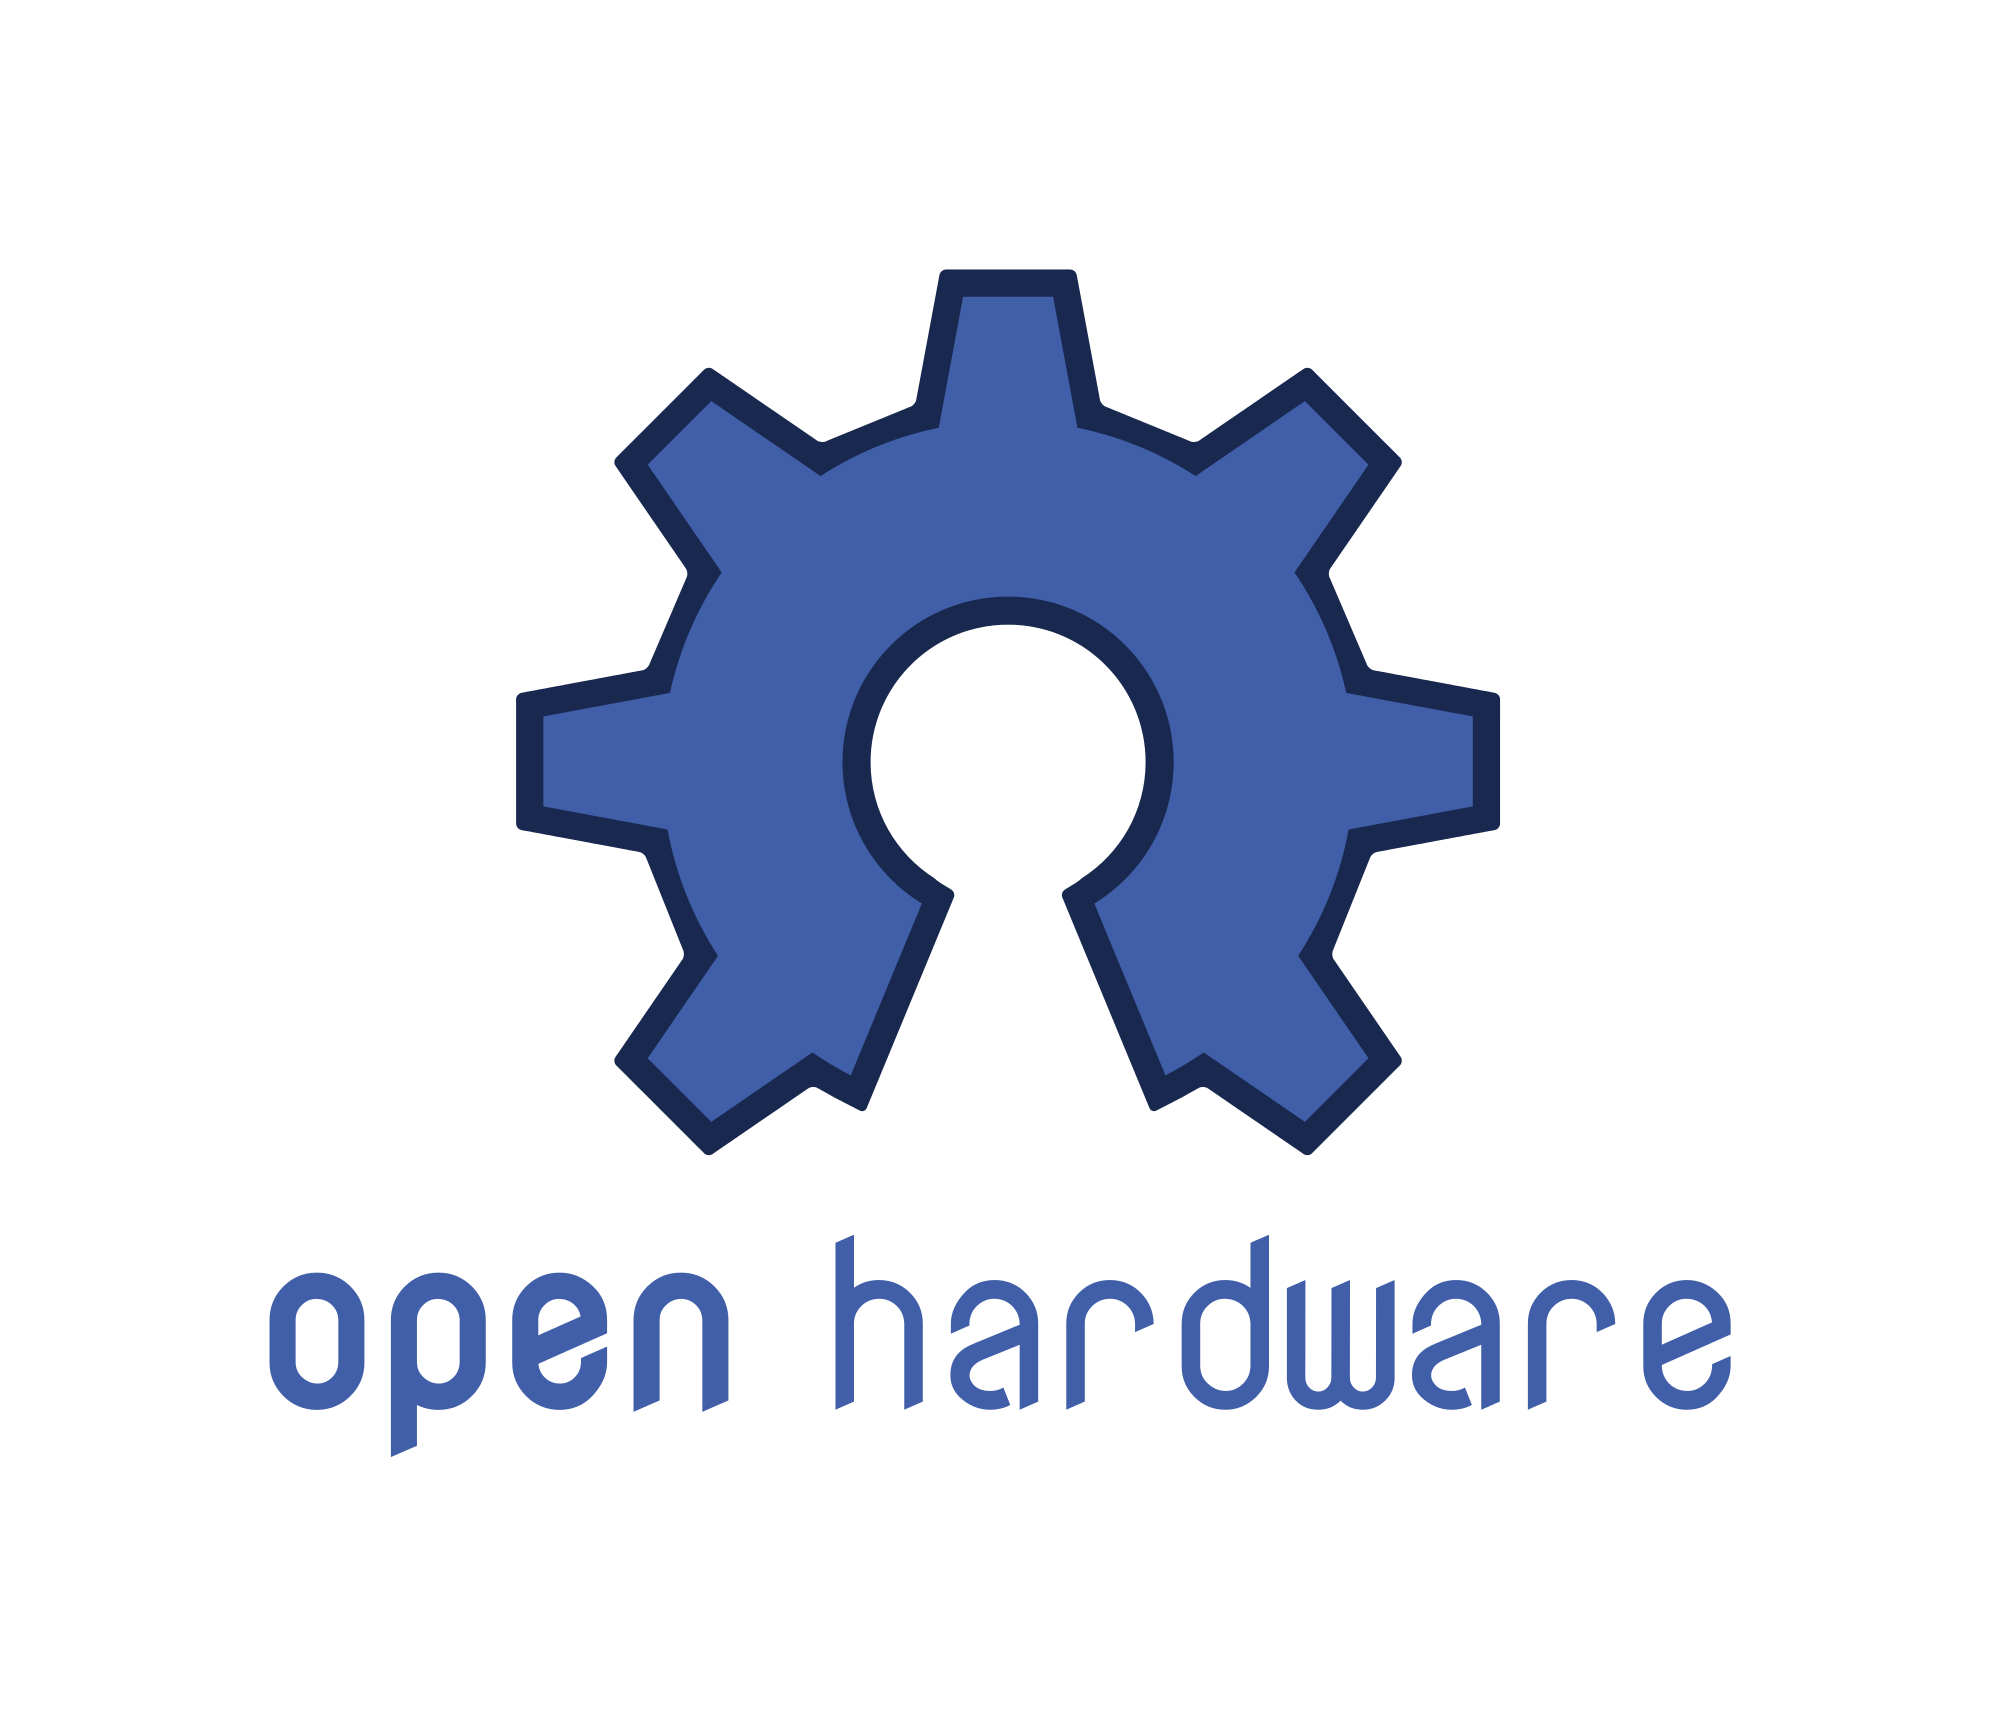 open-hardware-high-resolution-transparent-png-logo-large-ohw